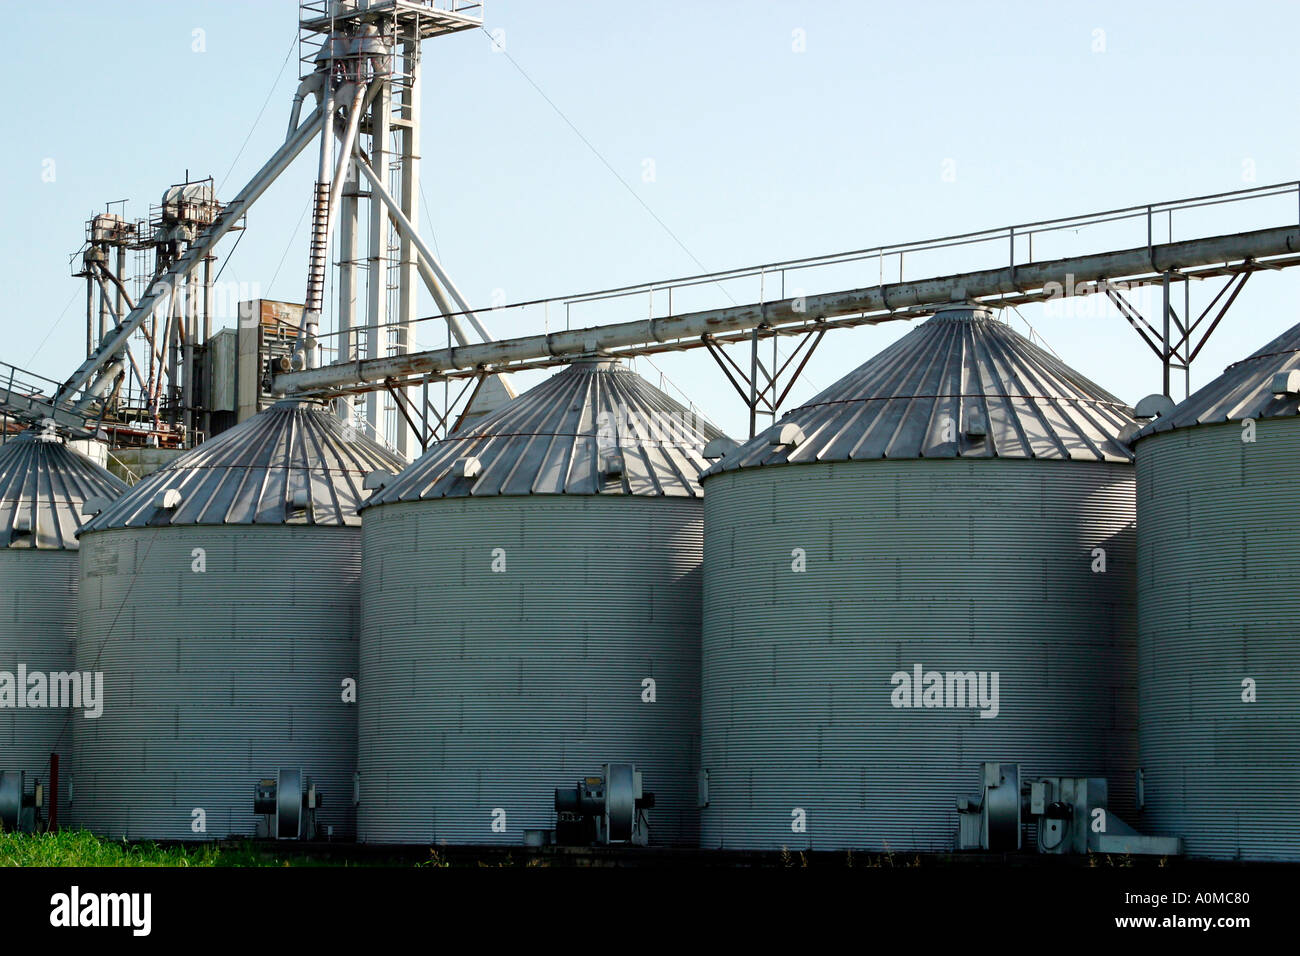 Delicieux Silo Farming Produce Storage 1 Photo Photos Industrial Food Textures